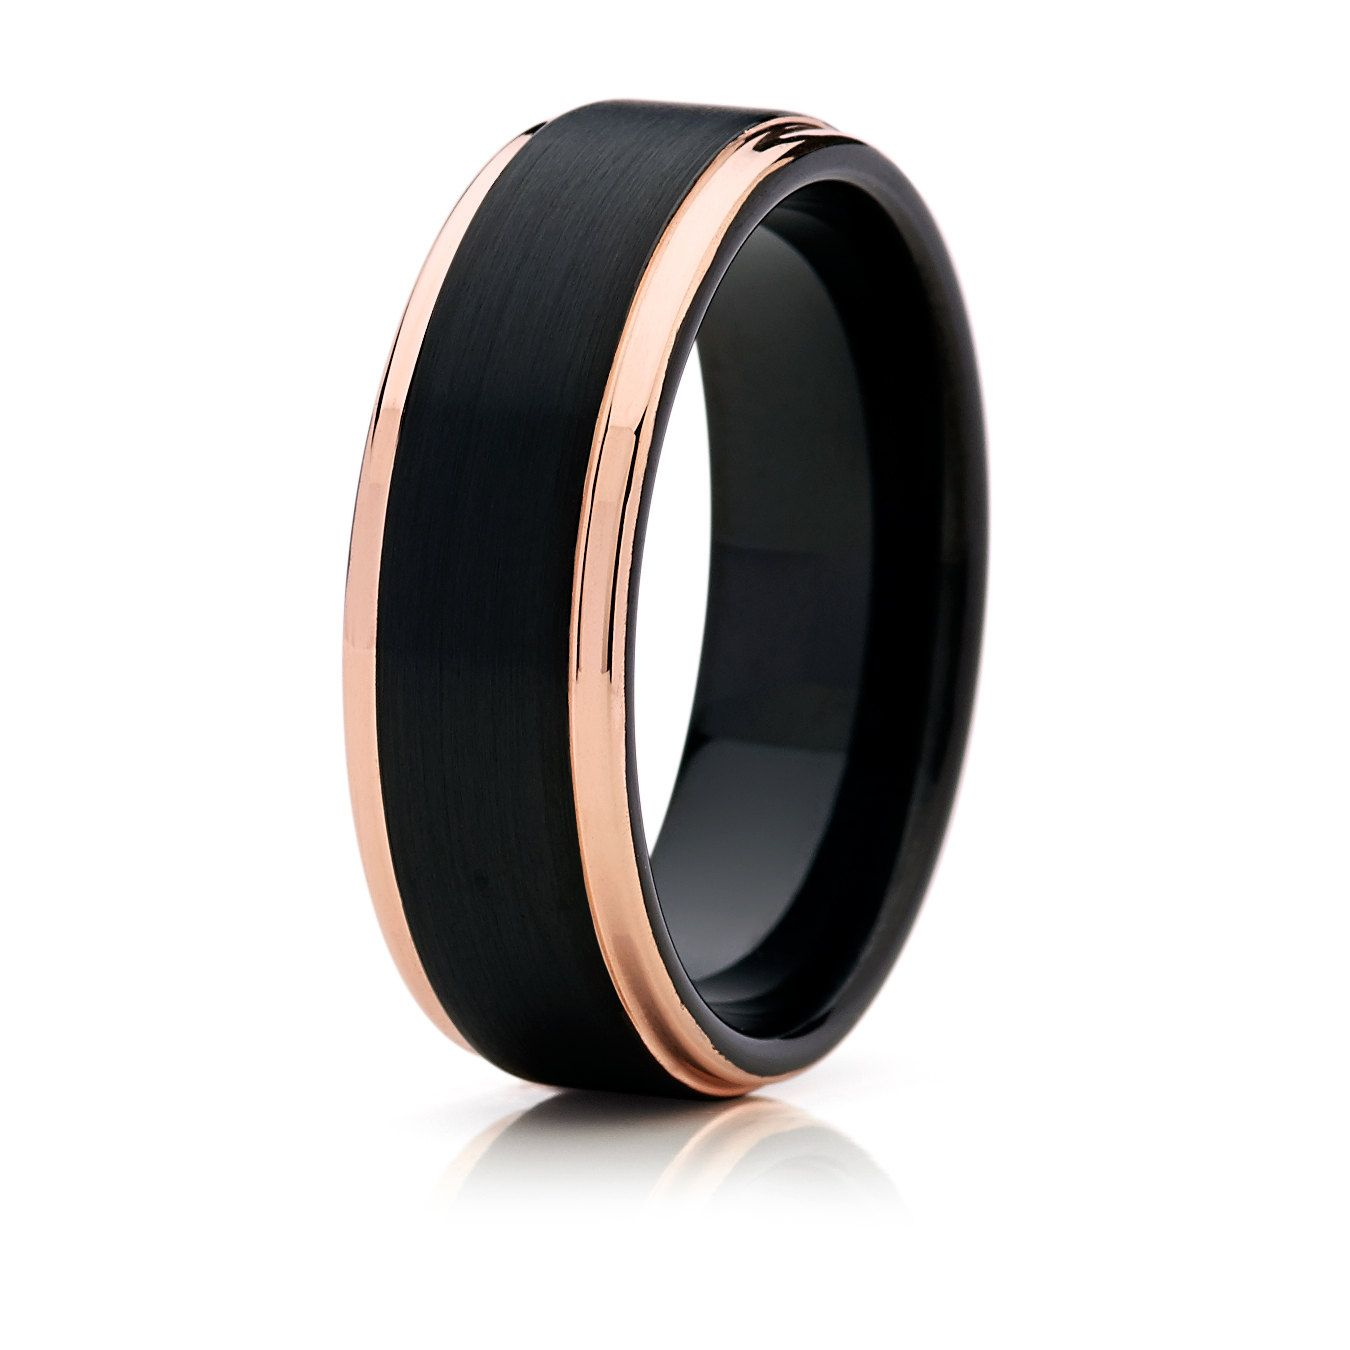 black with rose gold tungsten mens wedding bandtungsten wedding bandtungsten wedding ringtungsten unisex band anniversary ring - Mens Rose Gold Wedding Rings